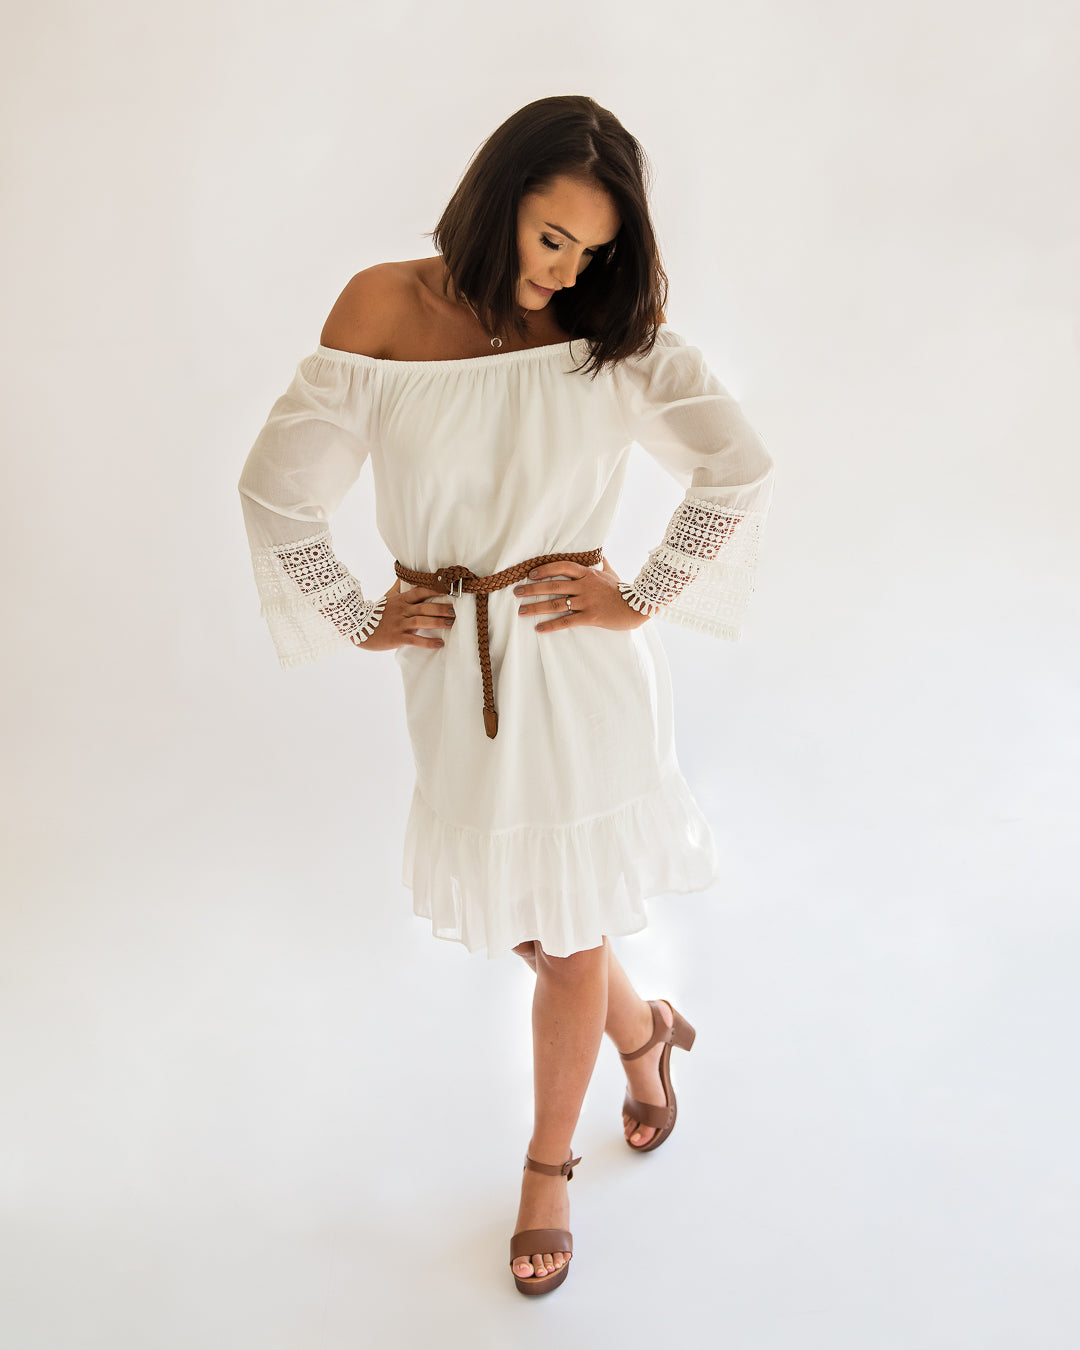 Tiana White Dress